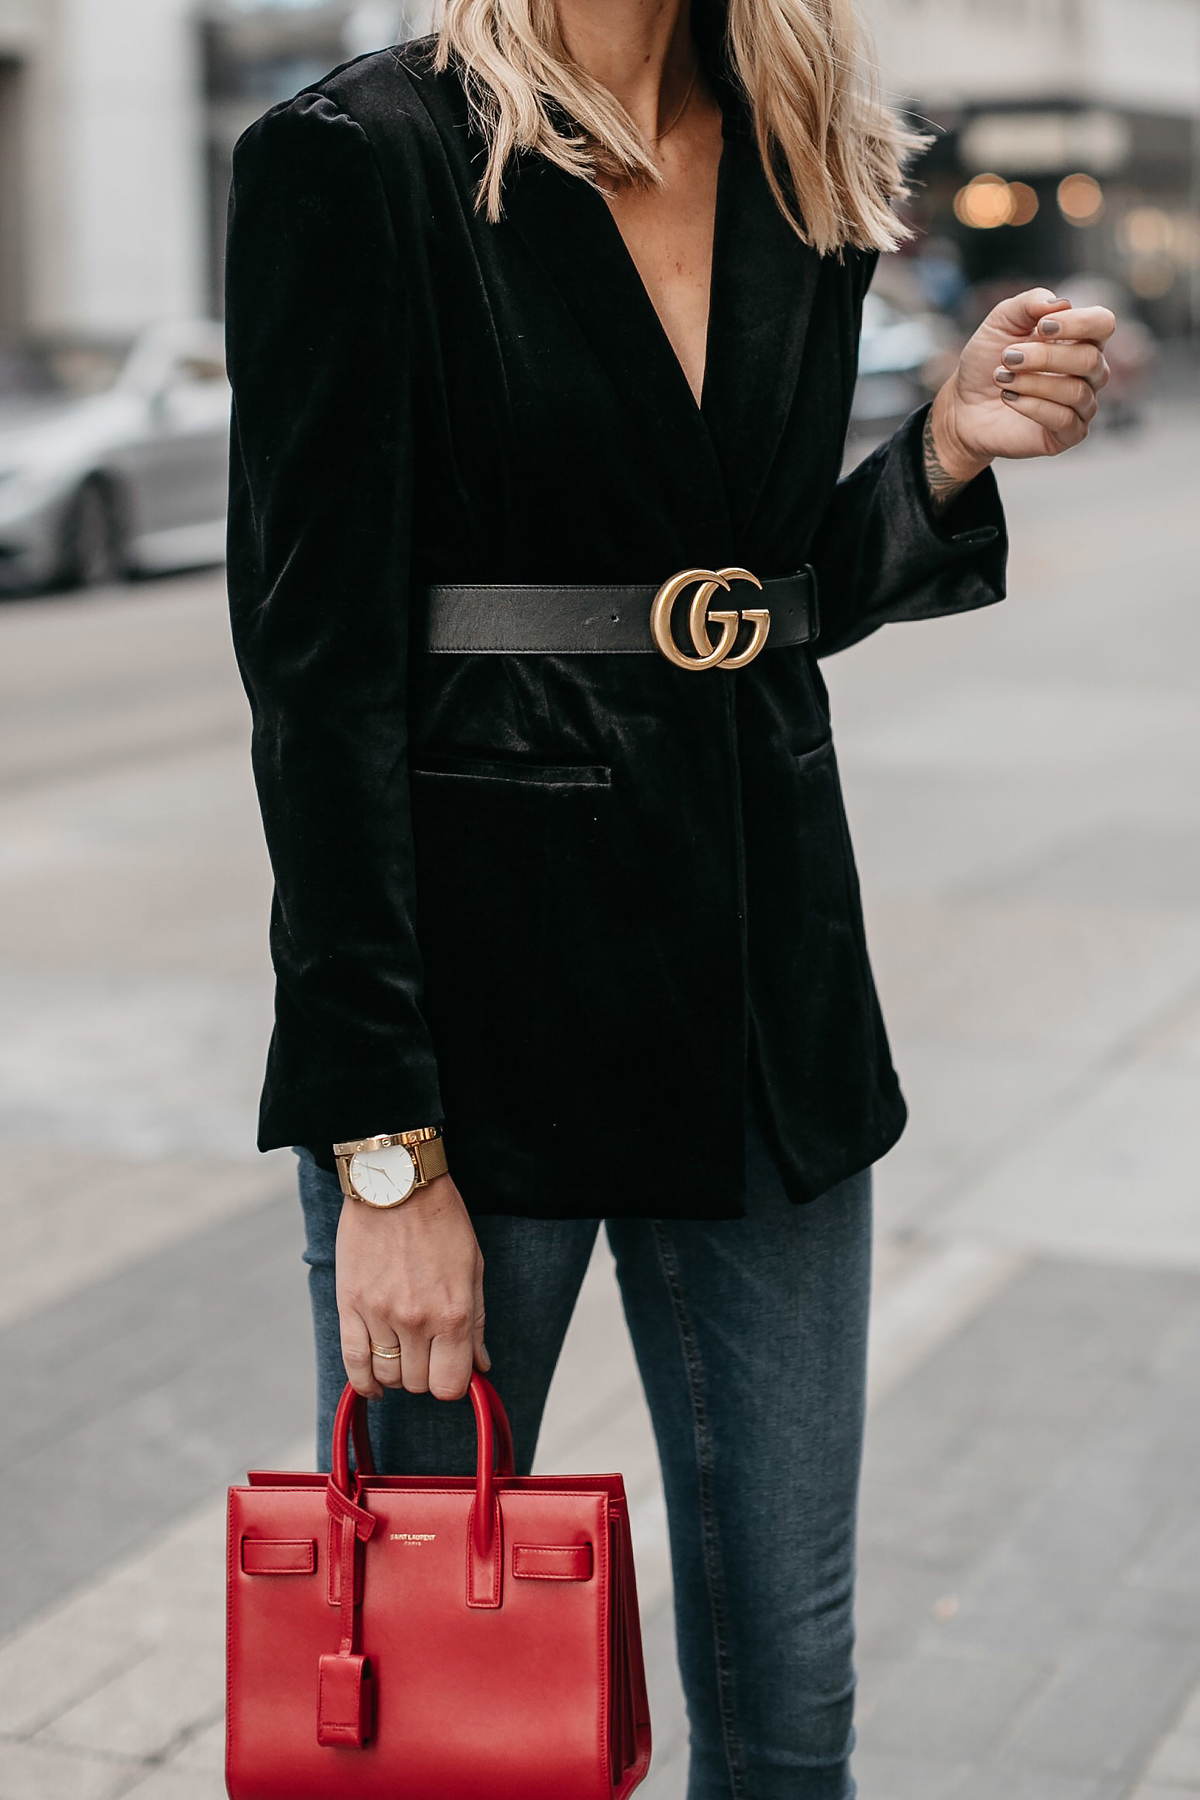 Black Velvet Blazer Gucci Marmont Belt Saint Laurent Red Sac De Jour Fashion Jackson Dallas Blogger Fashion Blogger Street Style